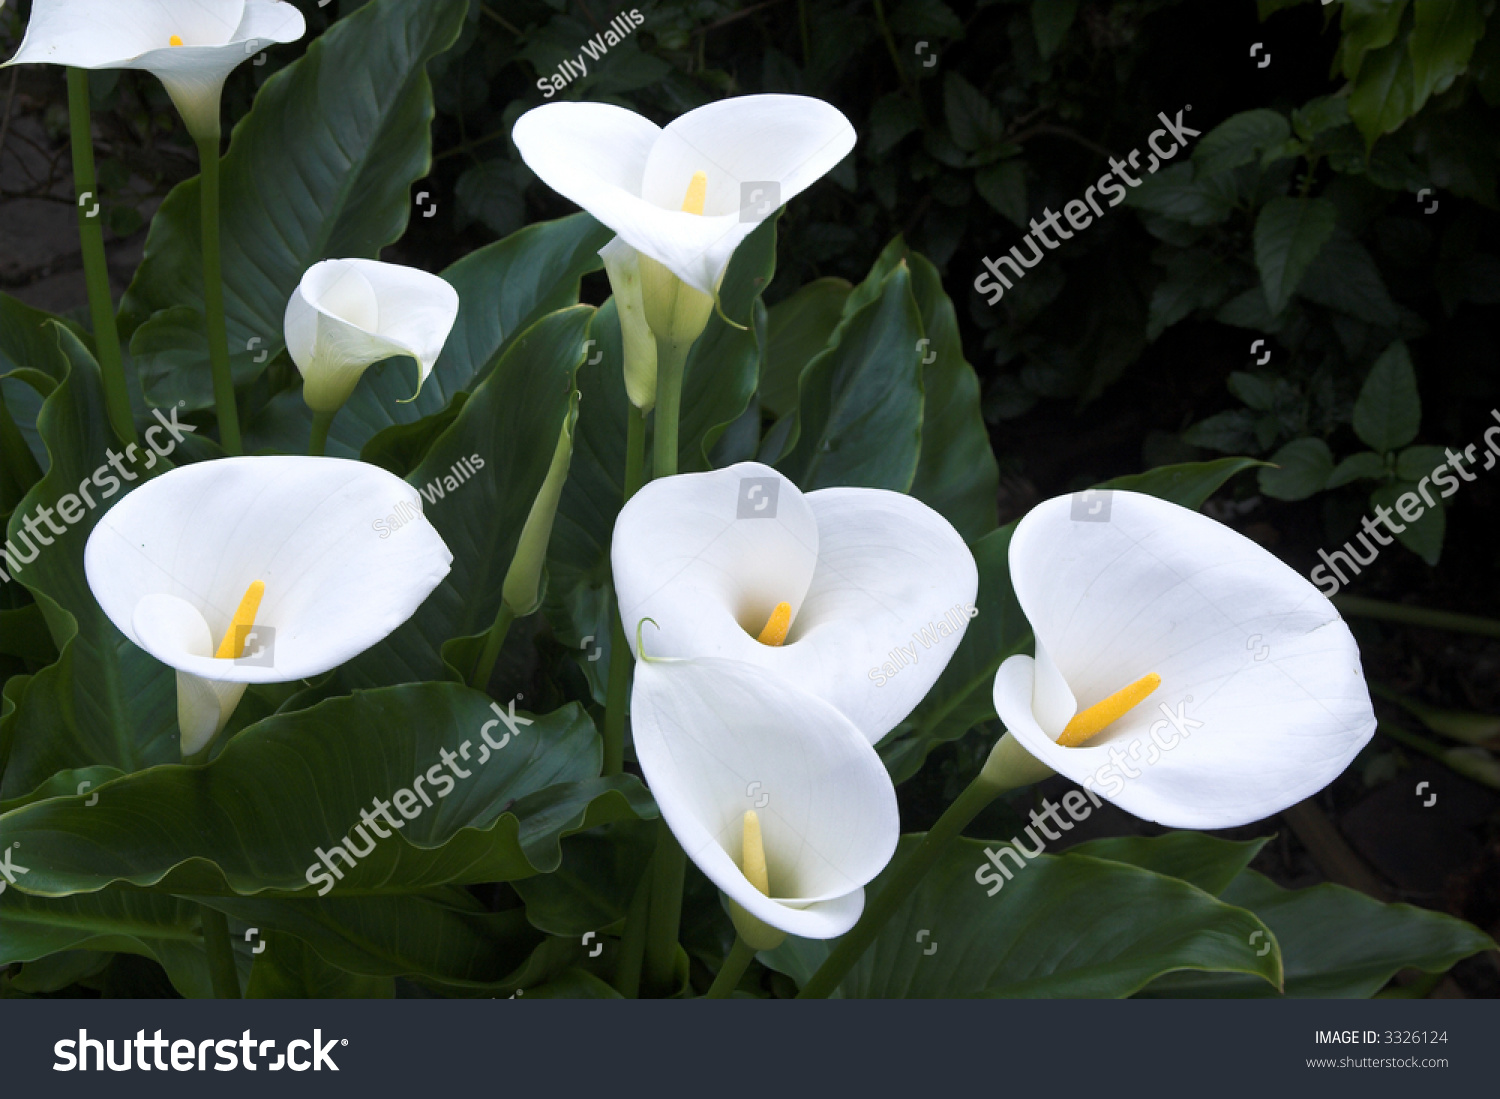 Calla lillies waxy white against background stock photo 3326124 calla lillies waxy and white against a background of dark green velvety leaves mightylinksfo